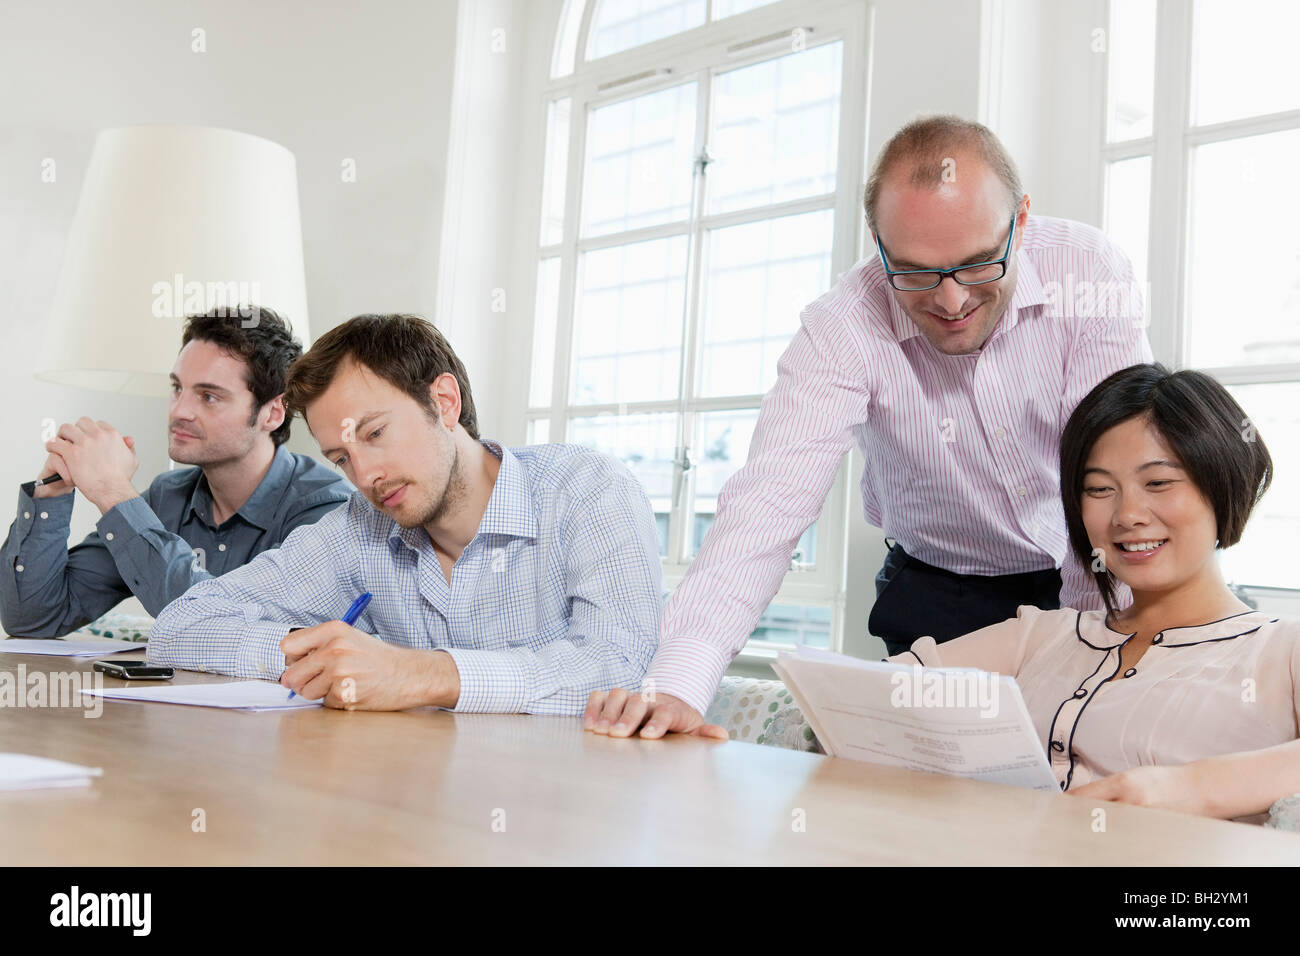 Group of people at a conference table Stock Photo